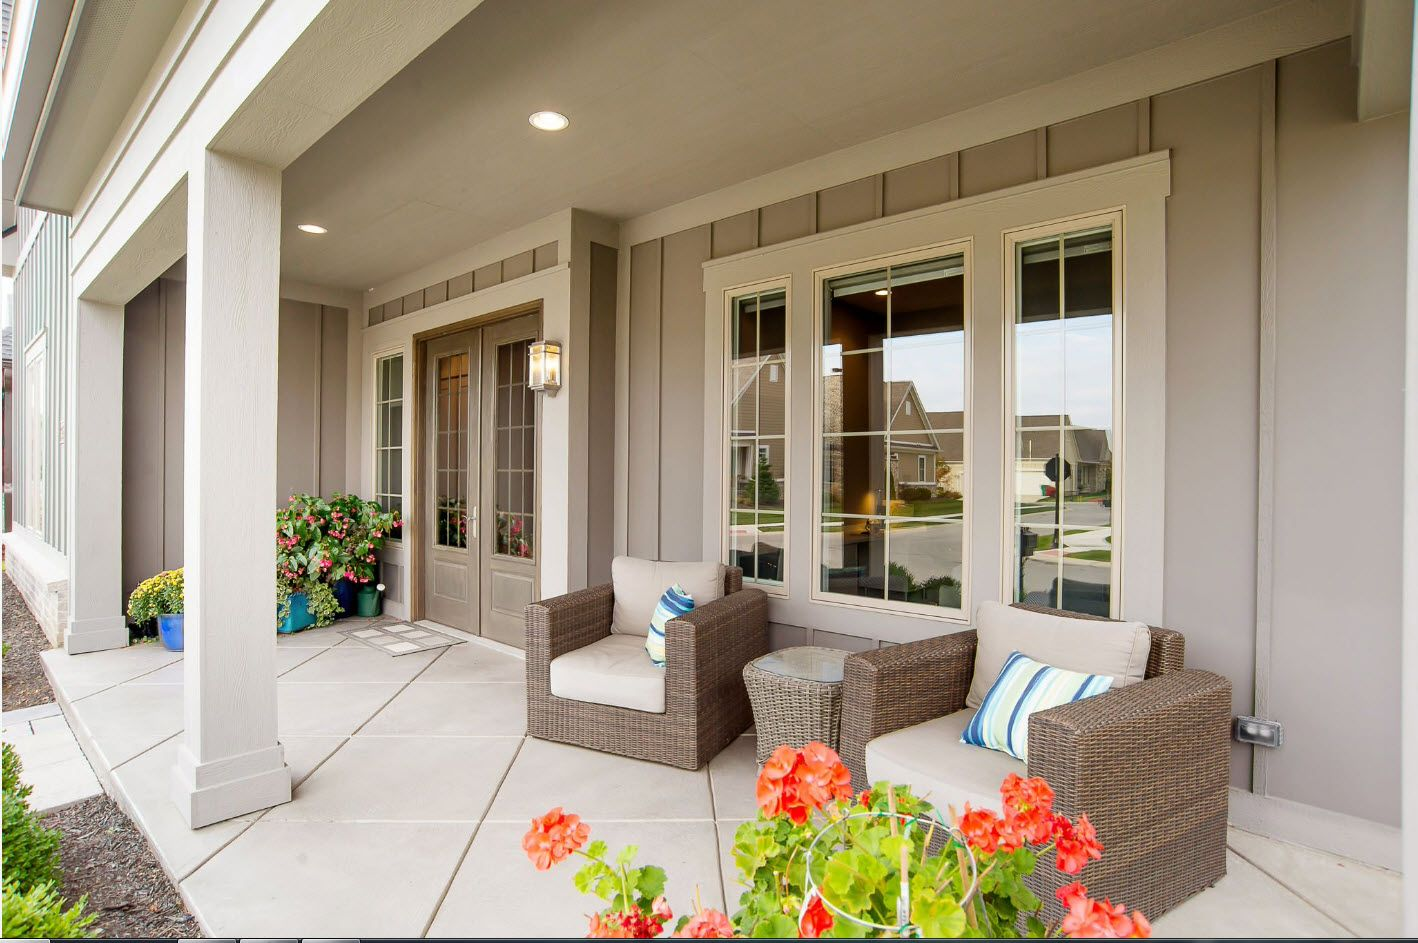 Country House Porch Decoration & Design Ideas. American style in gray tones with rattan wicker armchairs